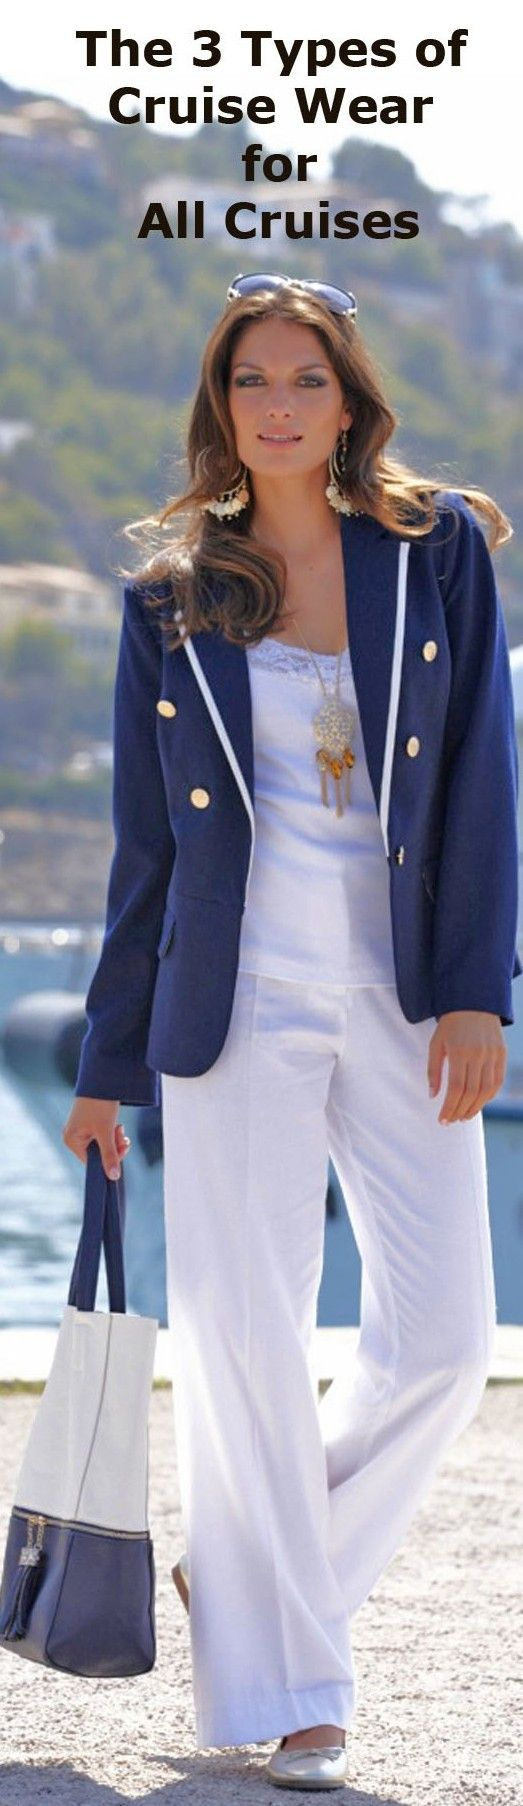 Women's Travel Cruise Wear Online - Chicks Over 40, 50, 60 - (article) - http://boomerinas.com/2011/12/26/womens-travel-cruise-wear-online-over-40-50/